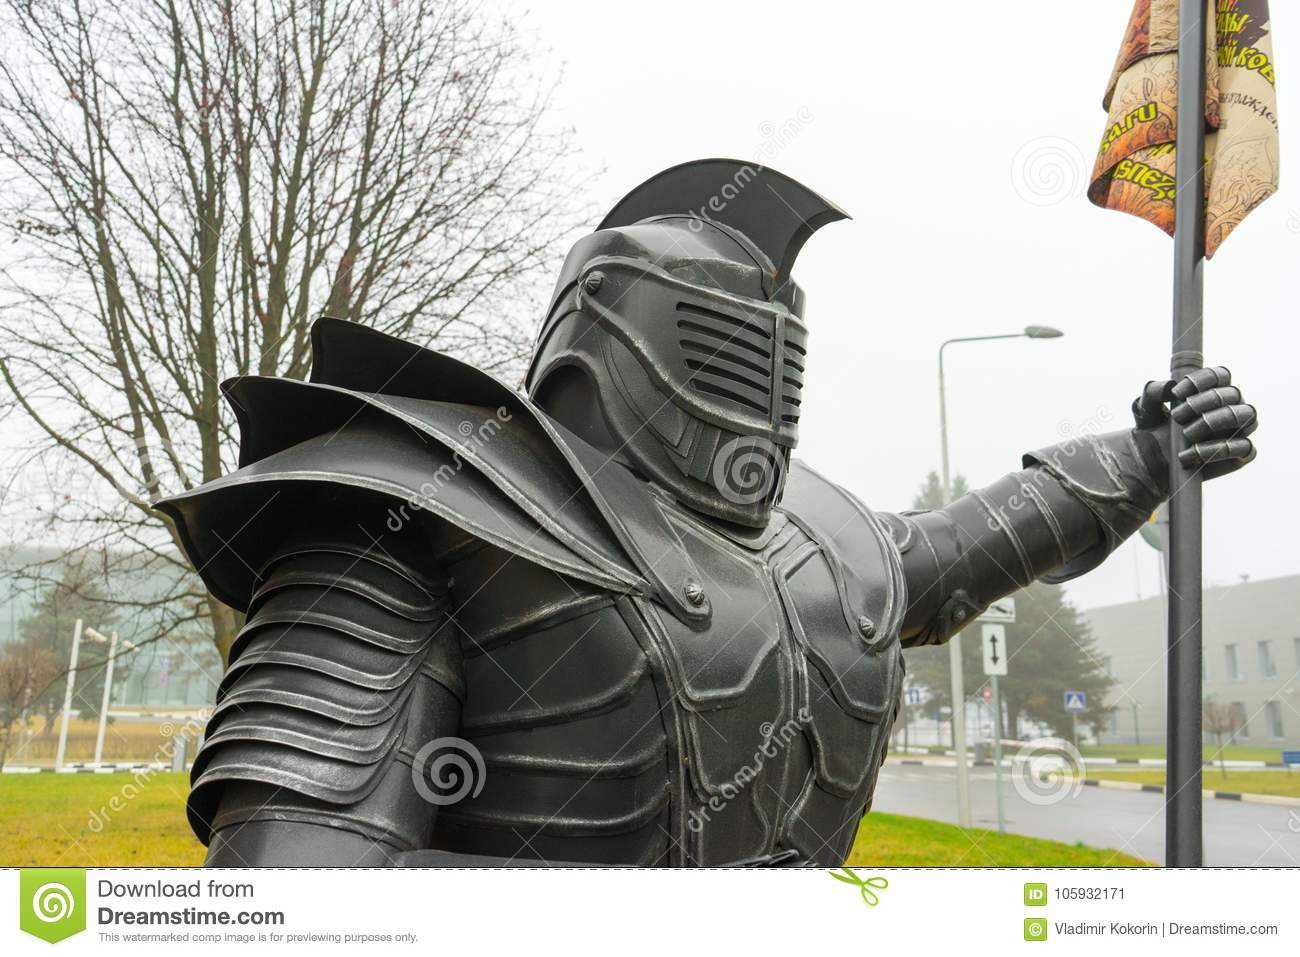 The statue of the knight. The figure of a man in metal armor.